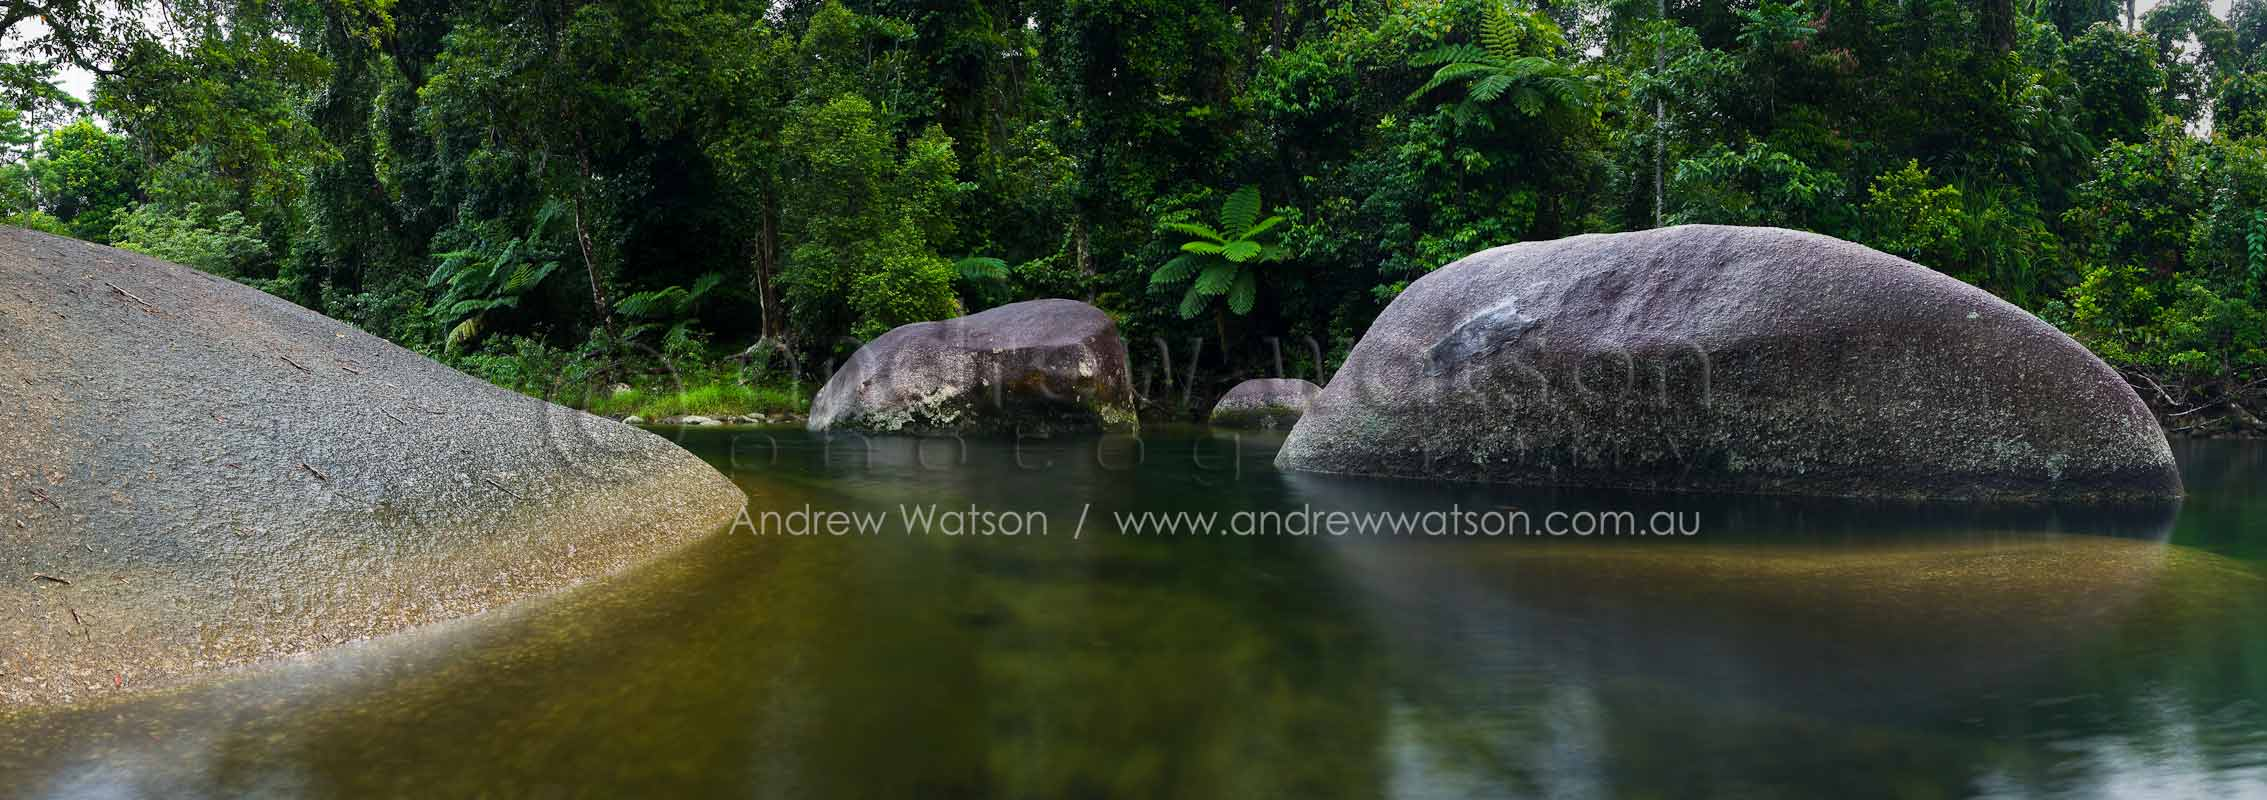 Freshwater swimming hole at the Babinda BouldersBabinda, North QueenslandImage available for licensing or as a fine-art print... please enquire